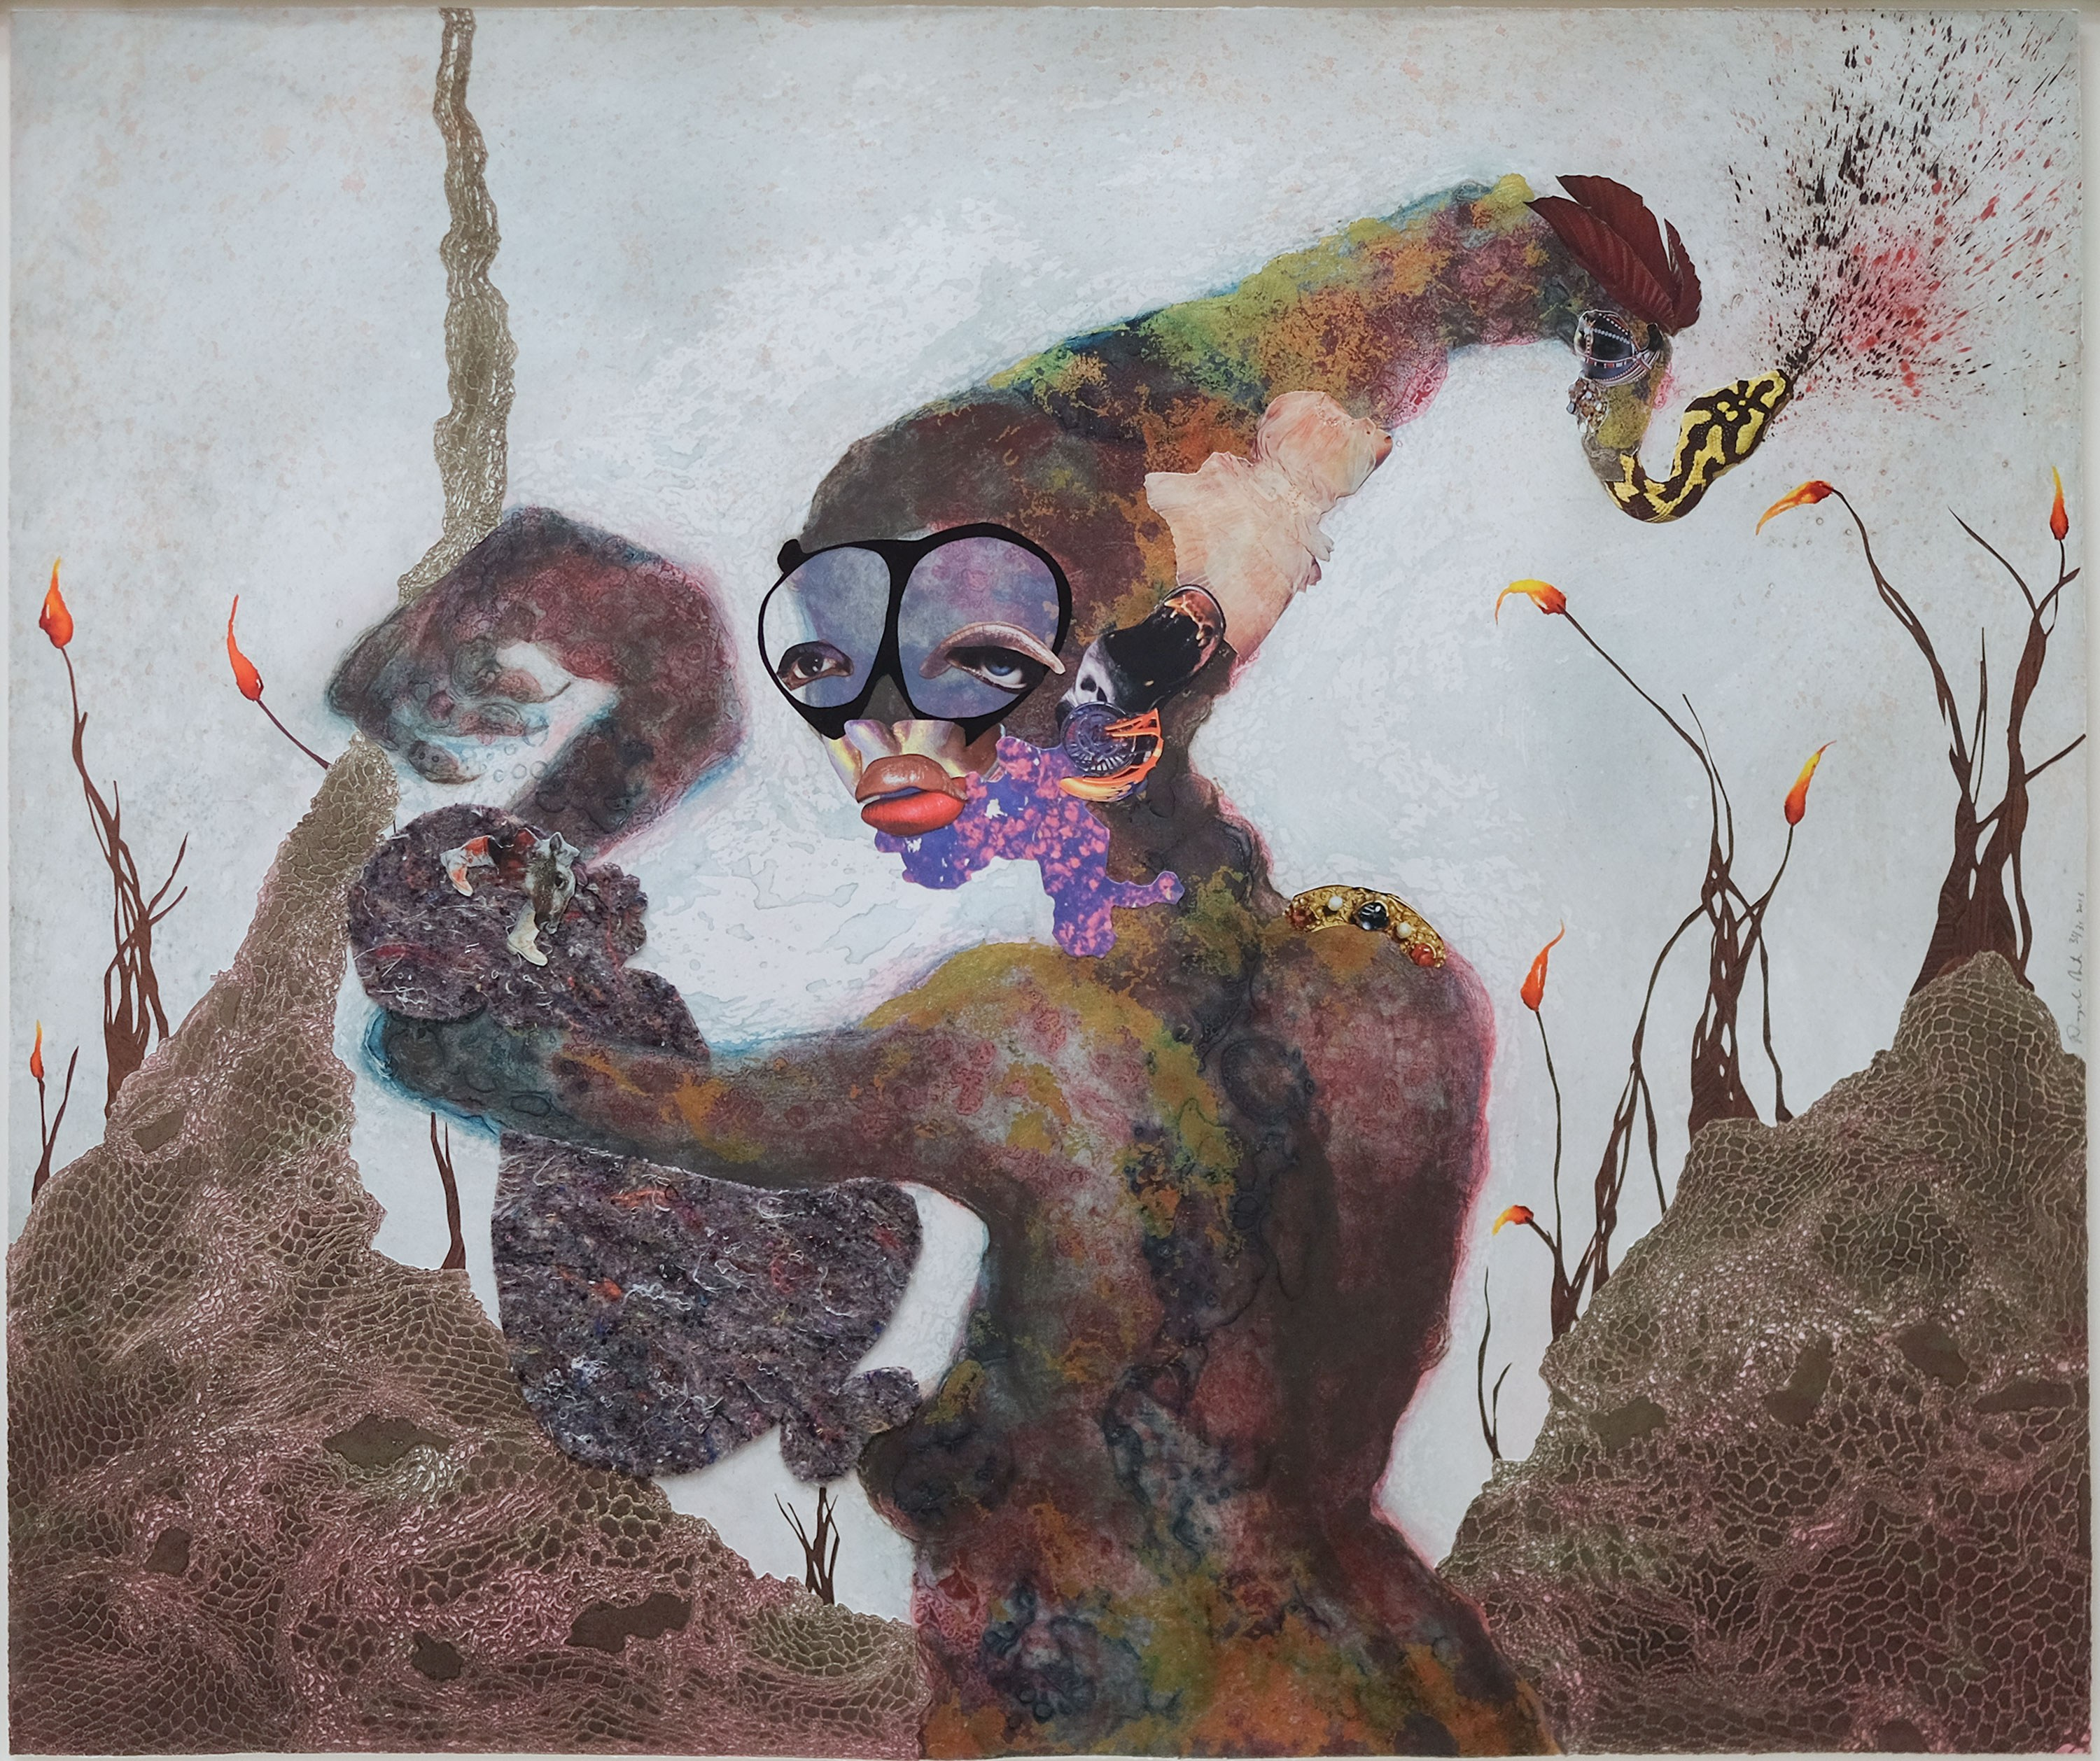 Wangechi Mutu, American, b. Kenya, 1972. Second Born, 2013. 24 kt gold, collagraph, relief, digital printing, collage, and hand coloring on paper, 36 x 43 in. Museum purchase with funds from the Collection Endowment, 2015.65